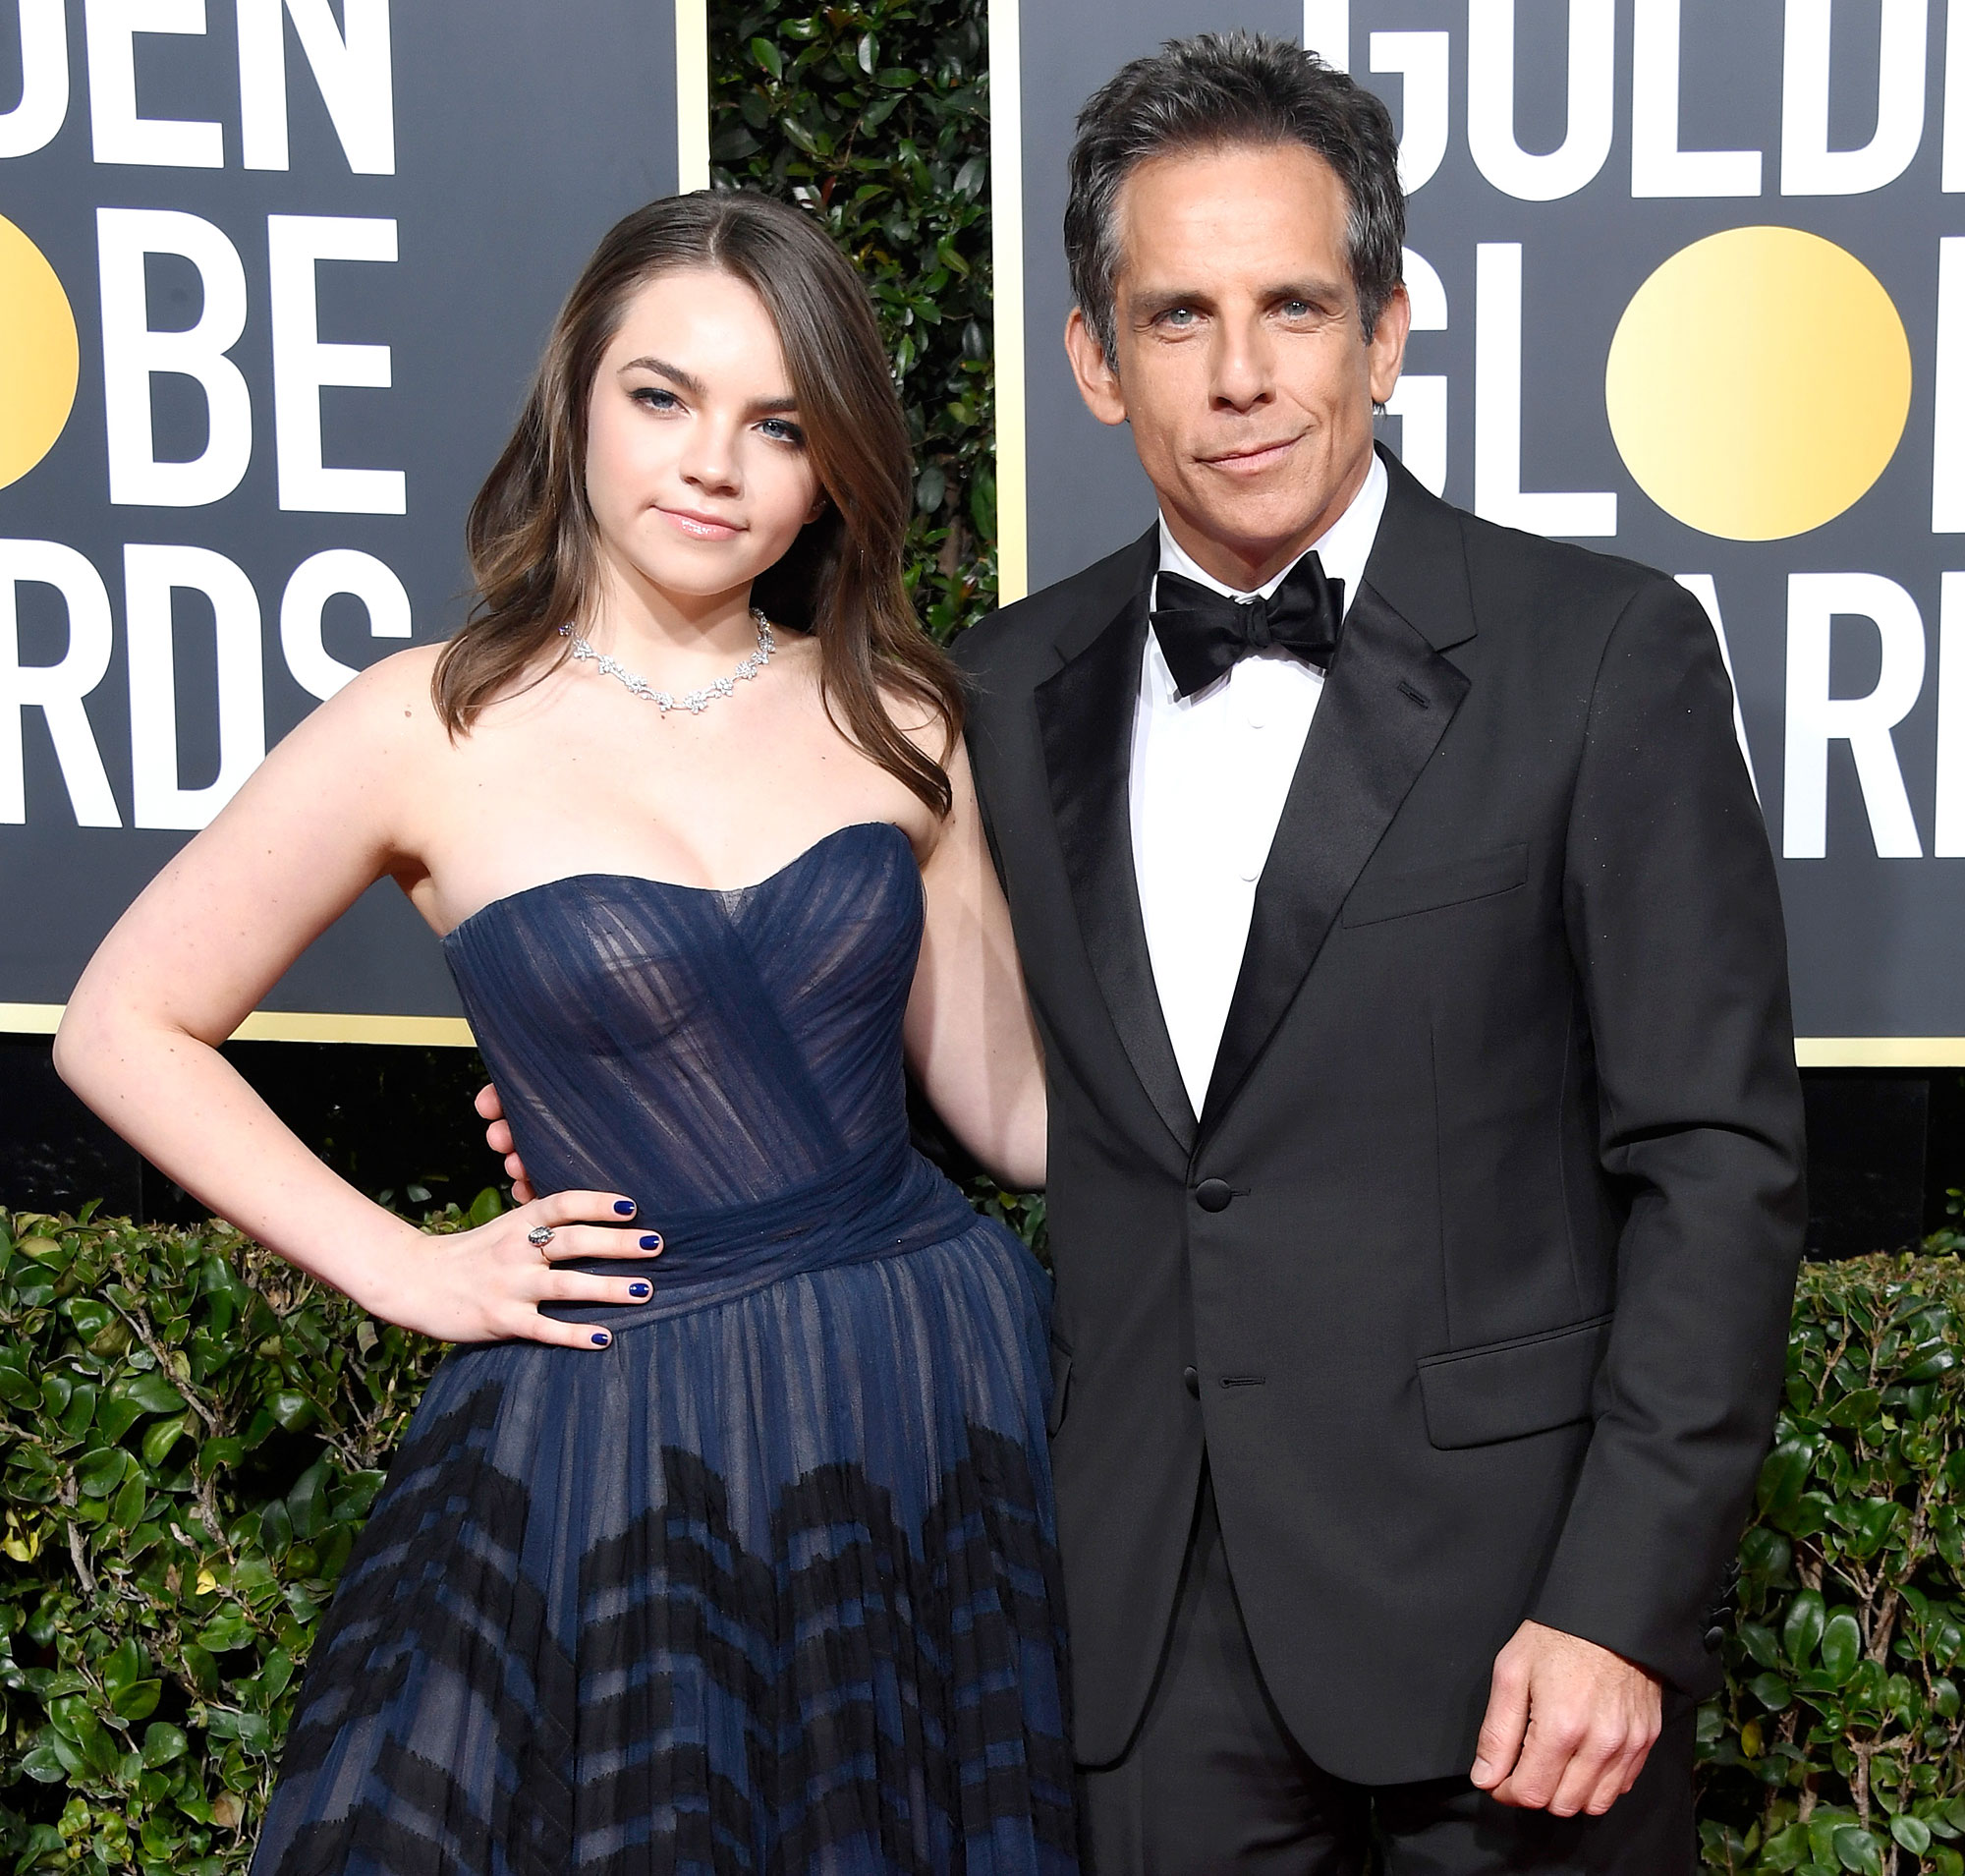 Ben Stiller Jokes Daughter Ella Football Scholarship Yale